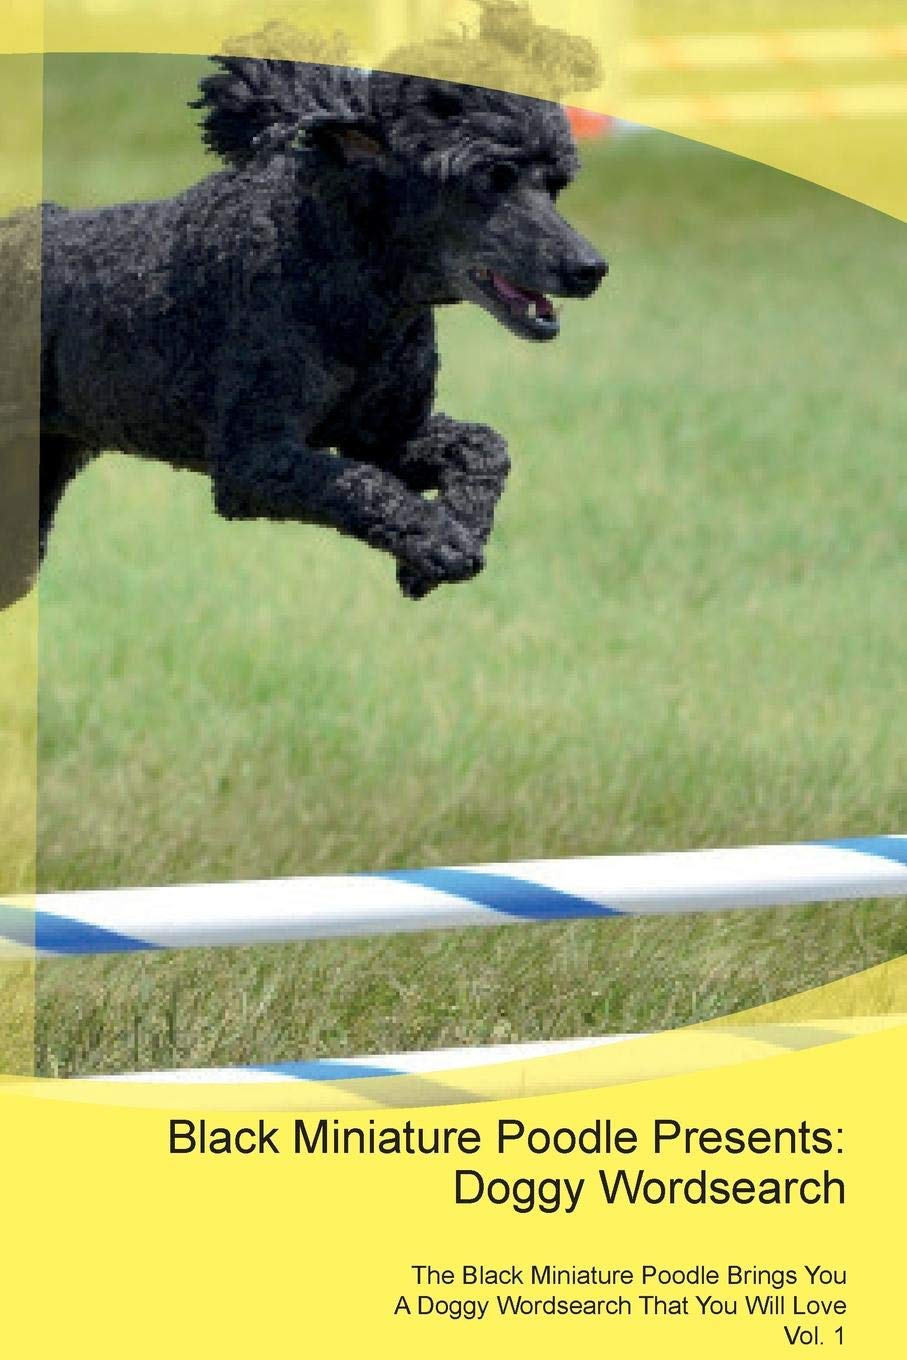 Black Miniature Poodle Presents: Doggy Wordsearch the Black Miniature Poodle Brings You a Doggy Wordsearch That You Will Love Vol. 1 PDF